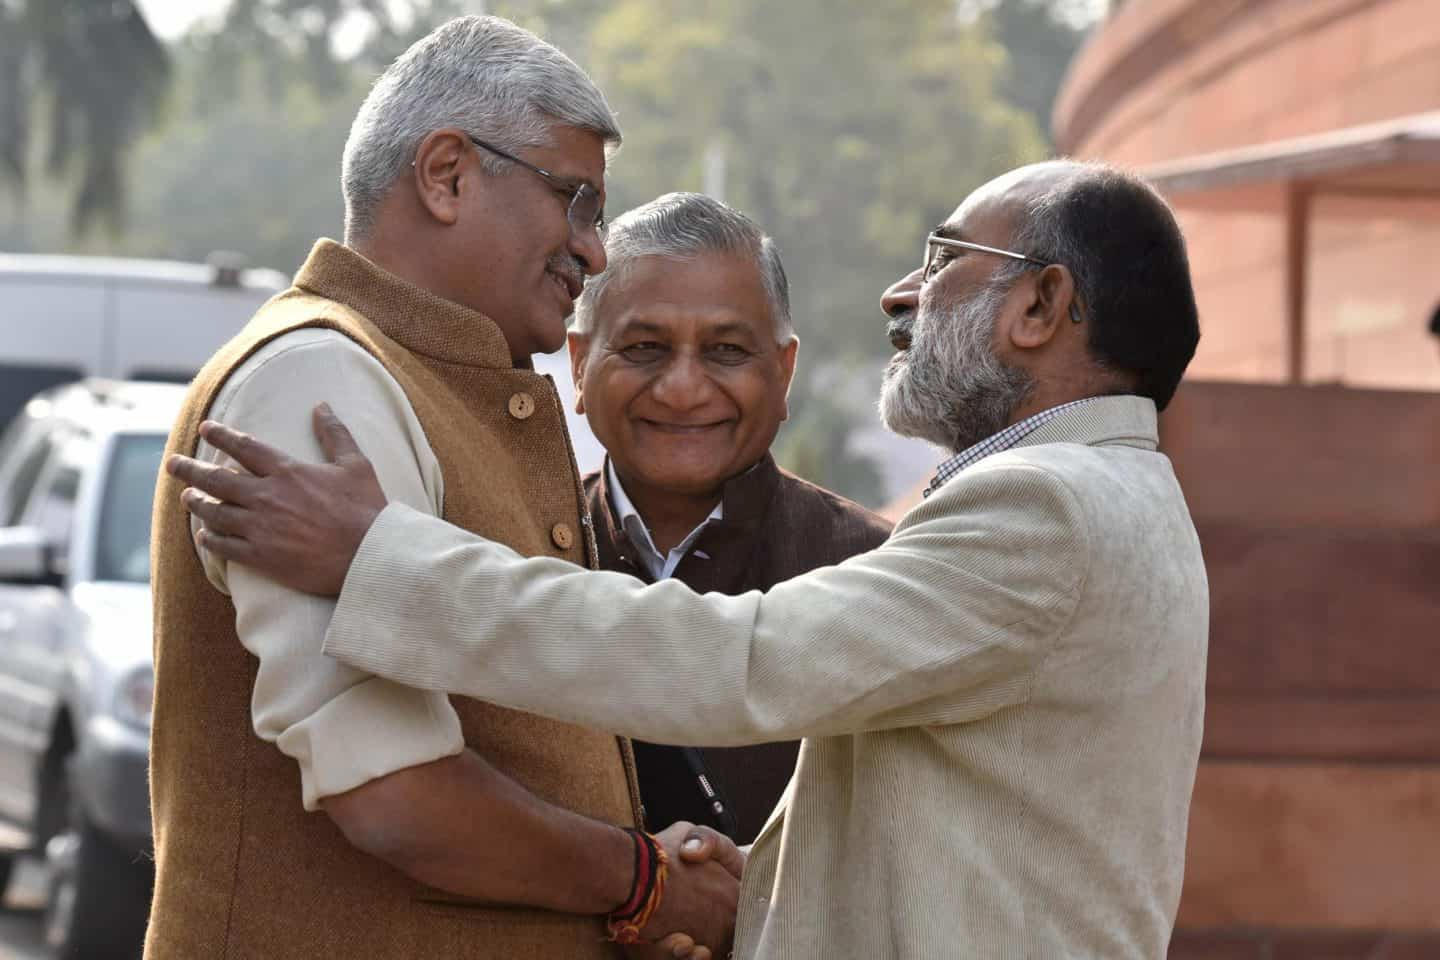 From left, minister of state for agriculture and farmers welfare Gajendra Singh Shekhawat with fellow ministers VK Singh and KJ Alphonso during an earlier session of parliament. Photo: Sanjeev Verma/ Hindustan Times via Getty Images